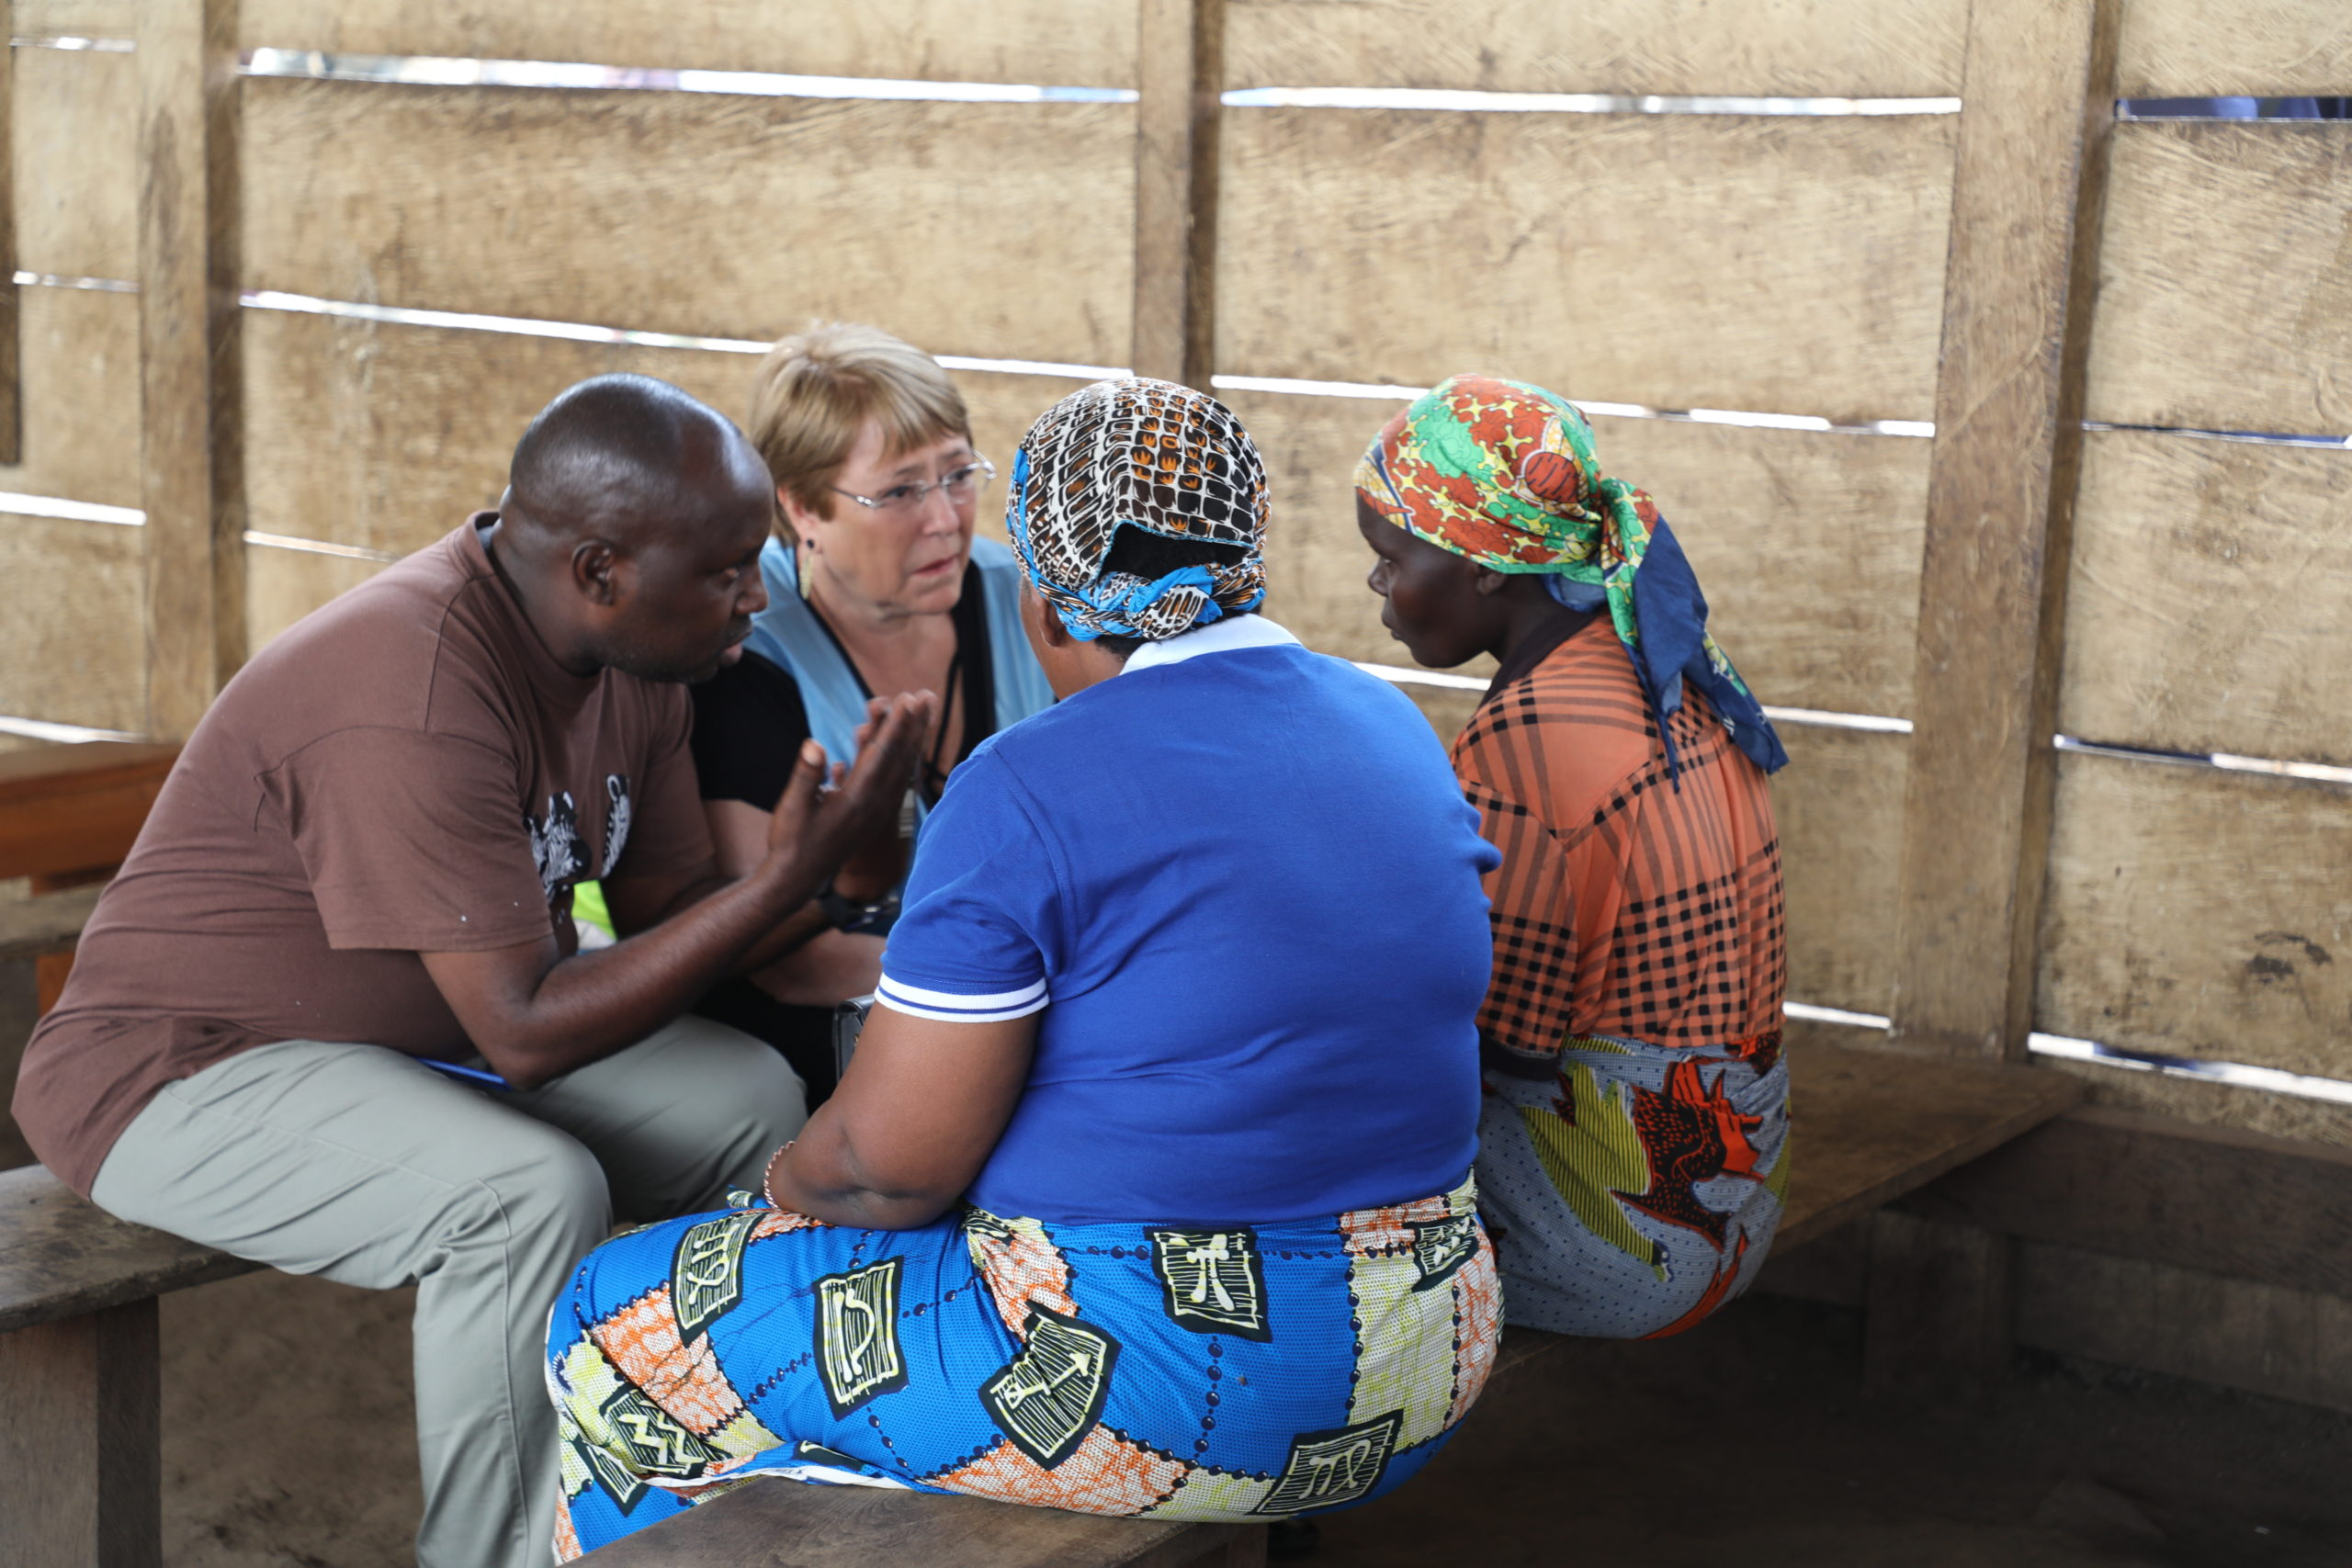 Michelle Bachelet in Bunia, Ituri Province in January 2020 speaking with internally displaced persons. © MONUSCO Photo.